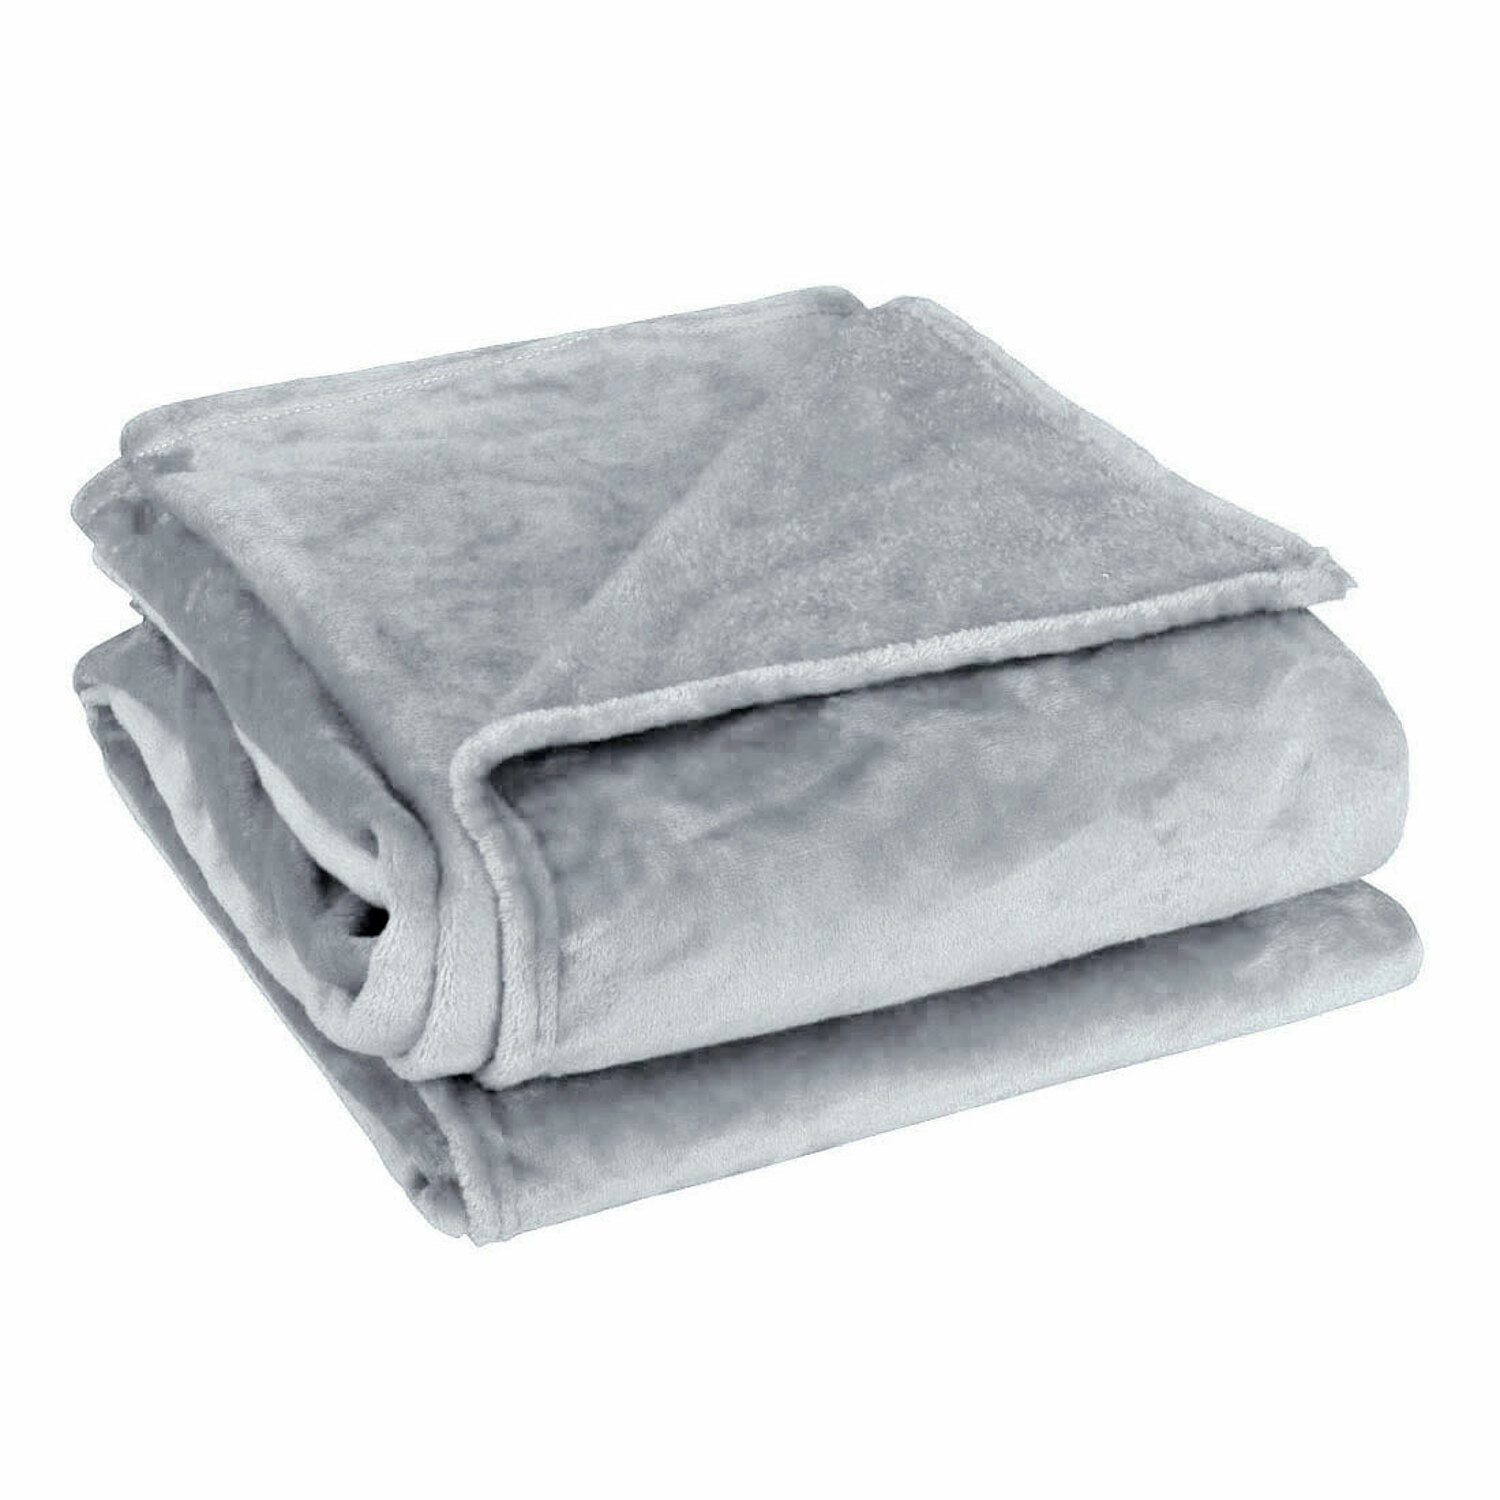 Twin Size Home Bedroom Bed Sofa Warm Soft Polyester Couch Throws Blanket Light Gray 150 x 200cm